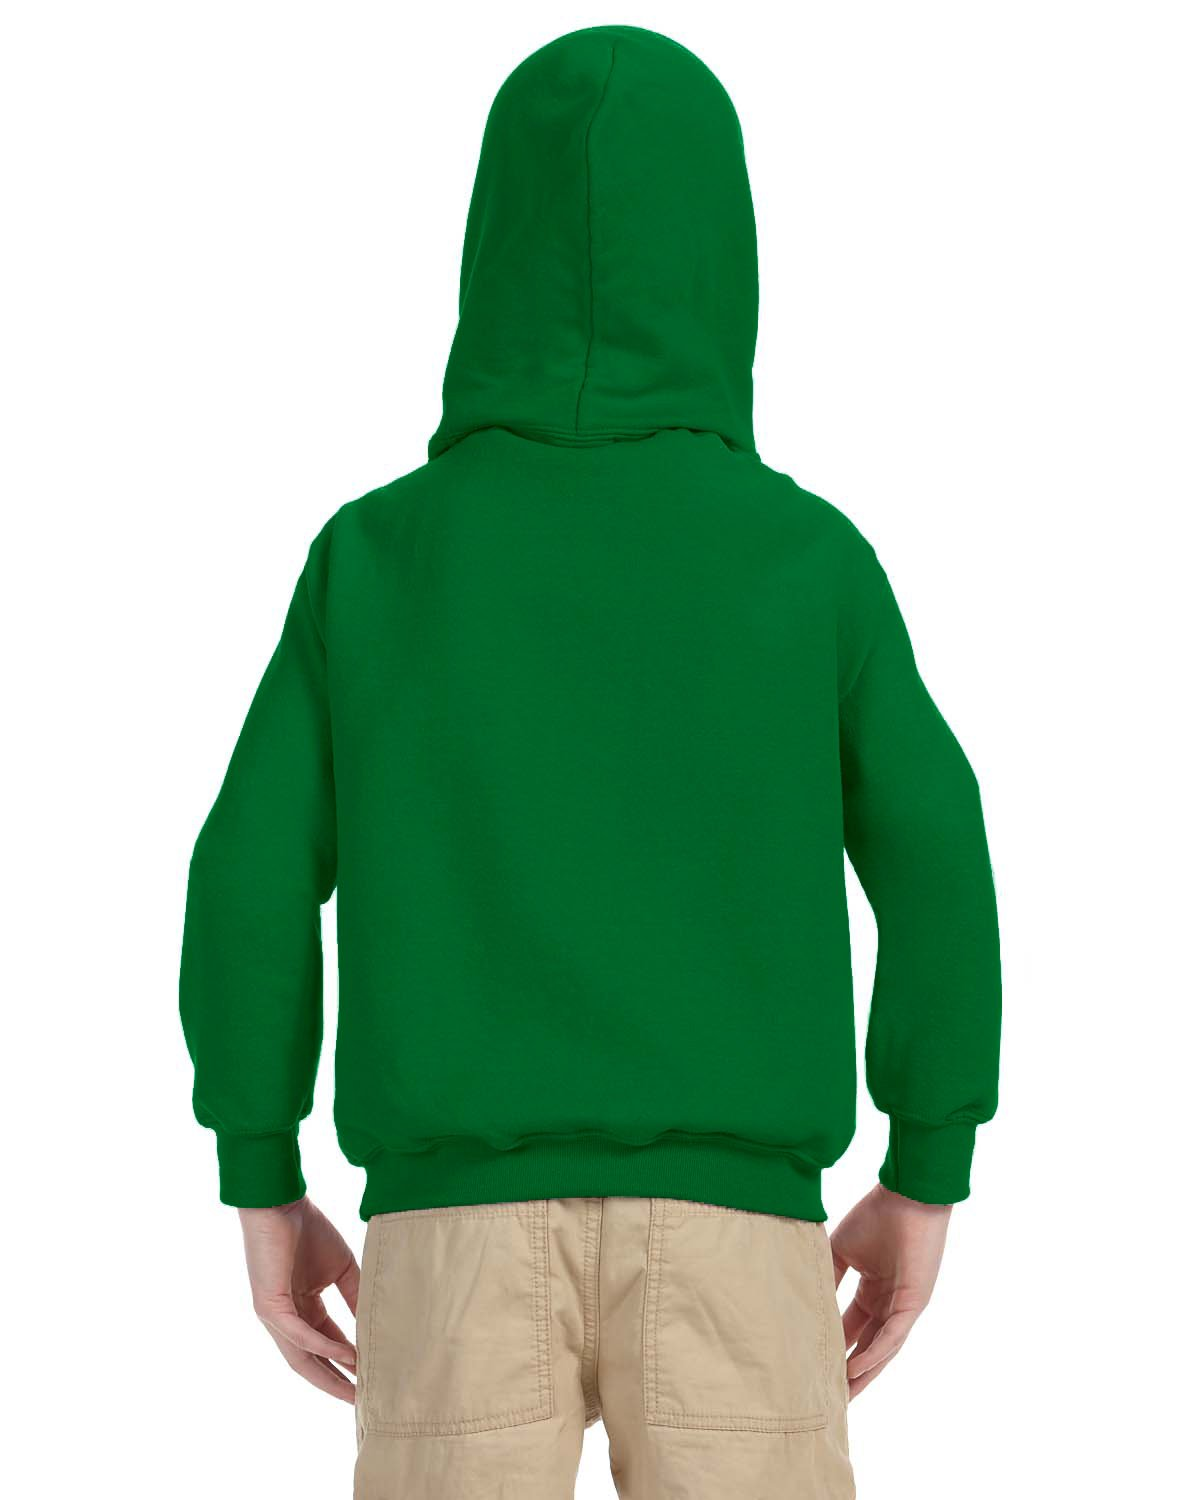 Indica Plateau Kids Hoodie Straight Outta Retirement X-Small Kelly Green Hoodie by Indica Plateau (Image #4)